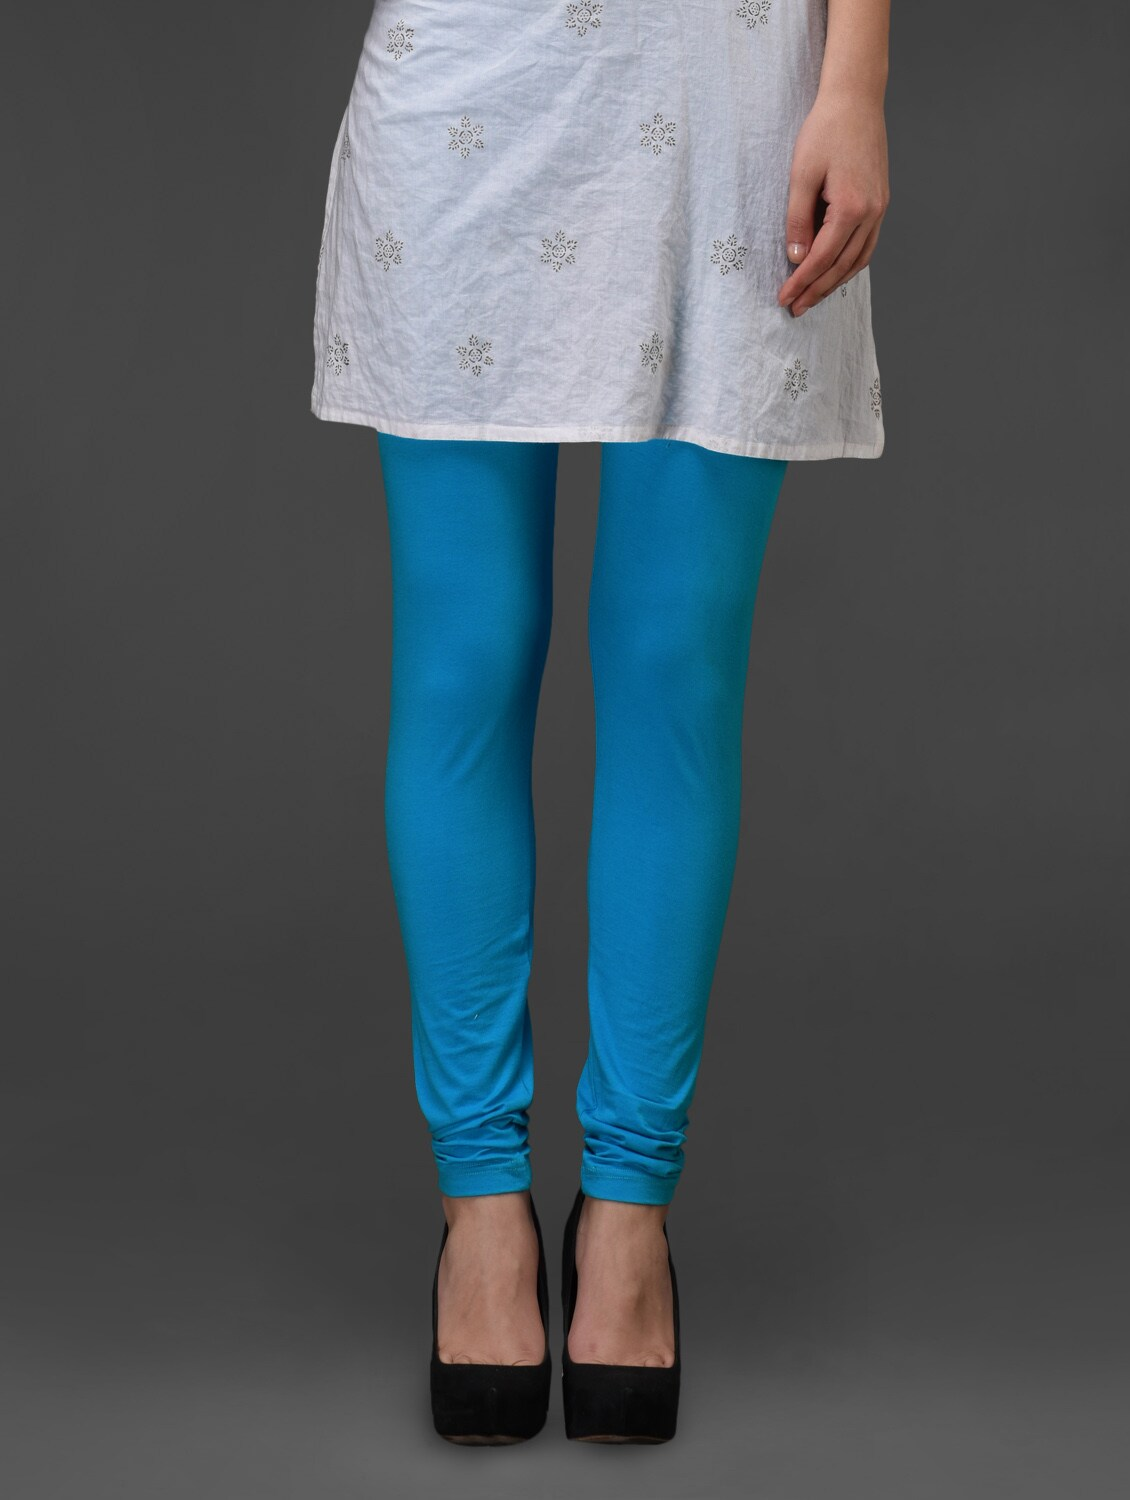 Turquoise Plain Cotton Leggings - Fashionexpo